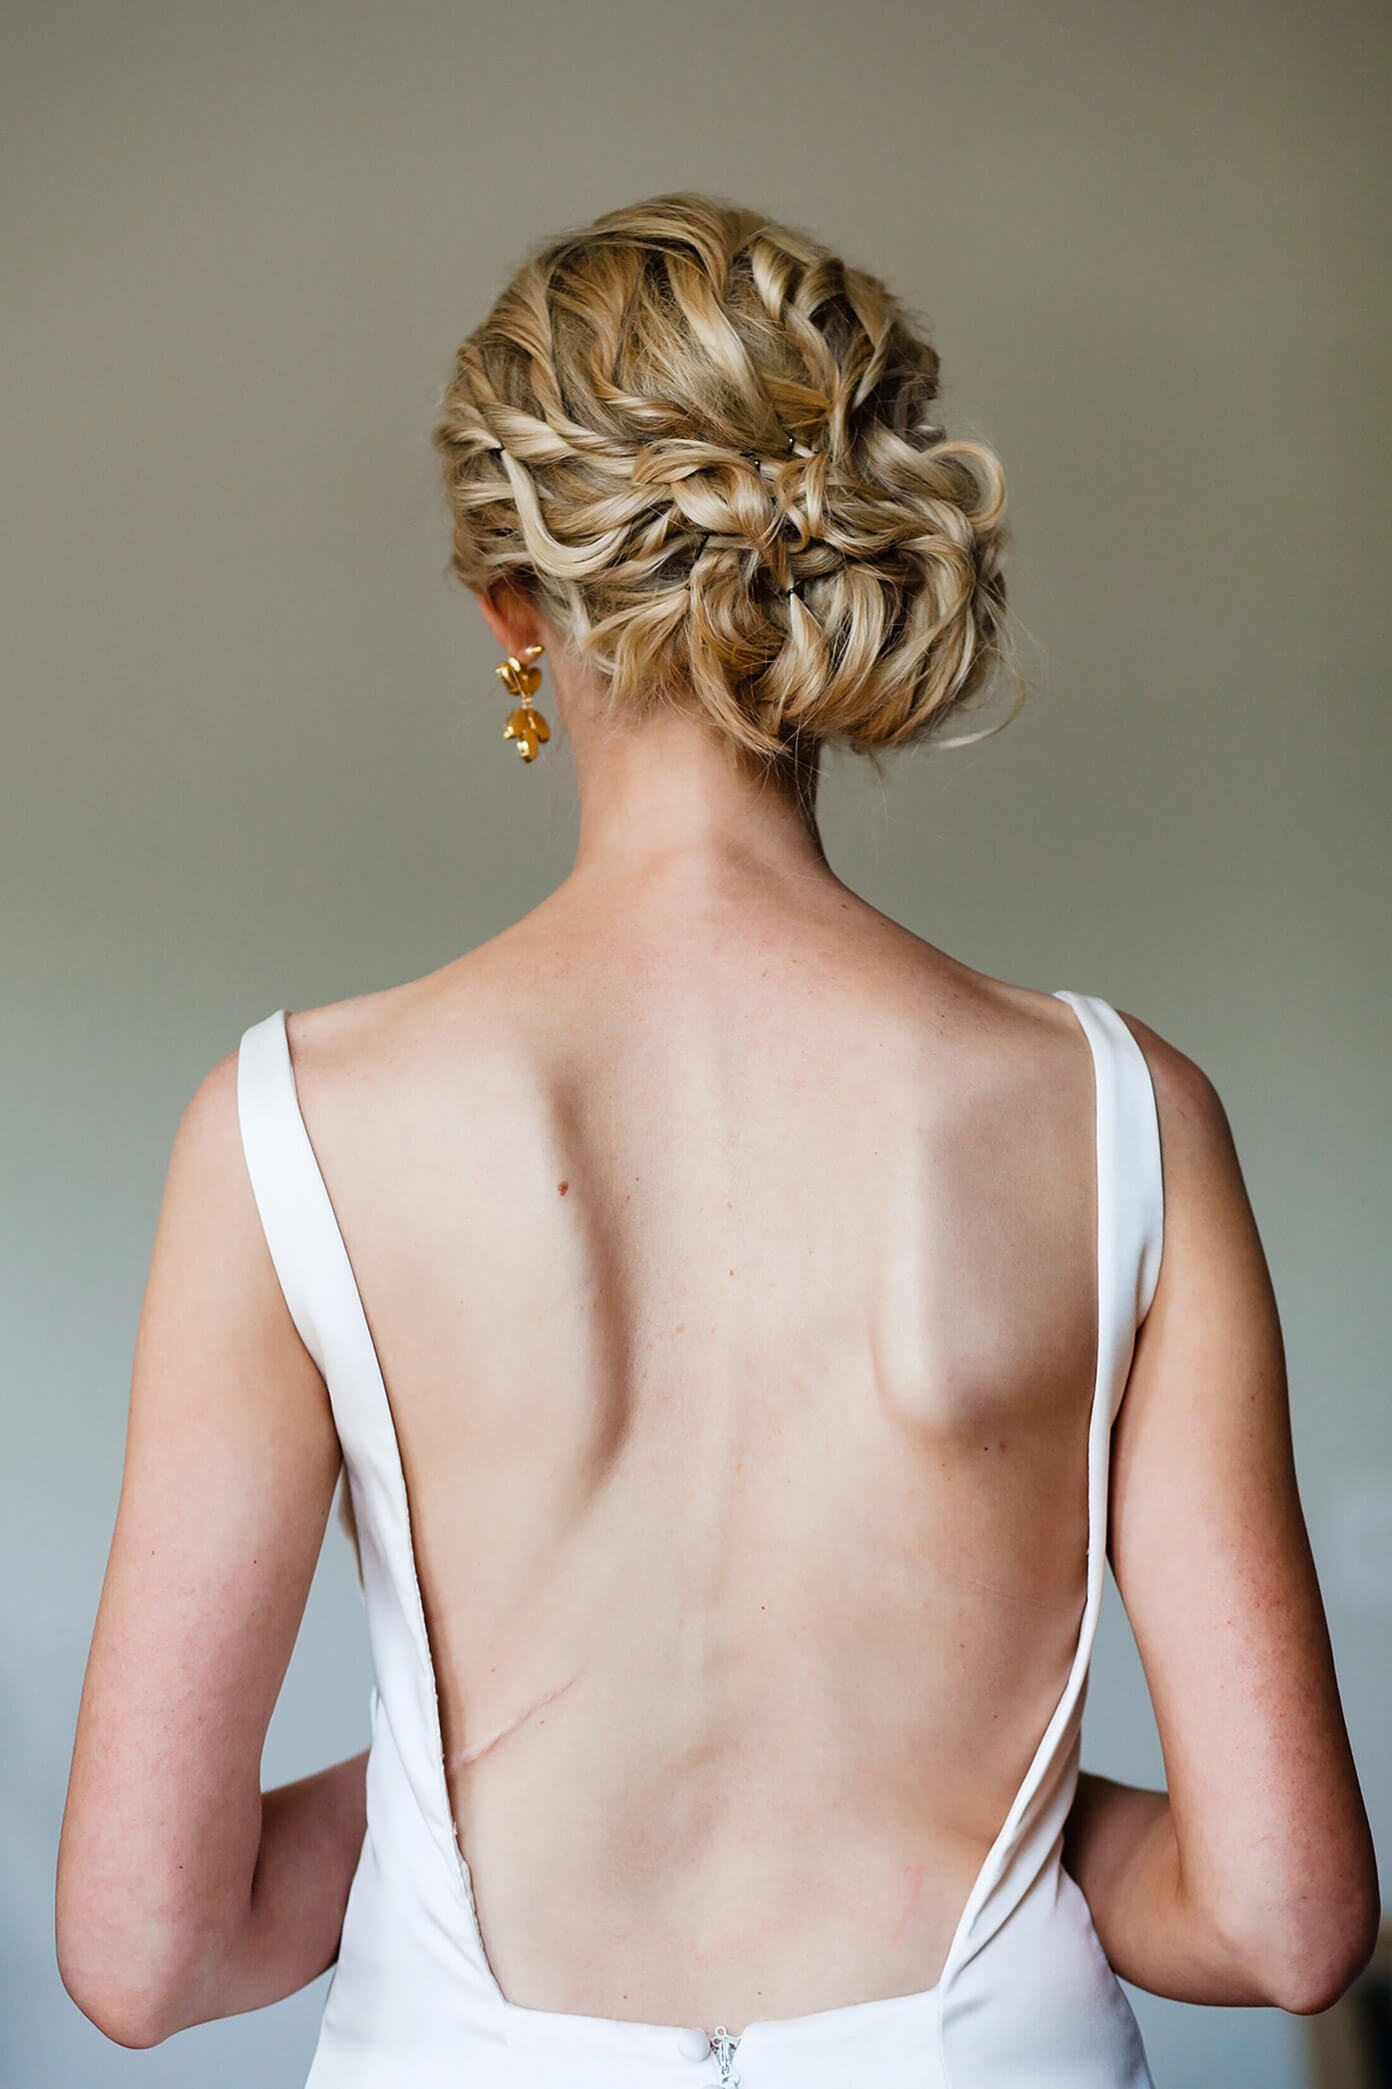 On Curves and Chronic Pain | My Scoliosis Story